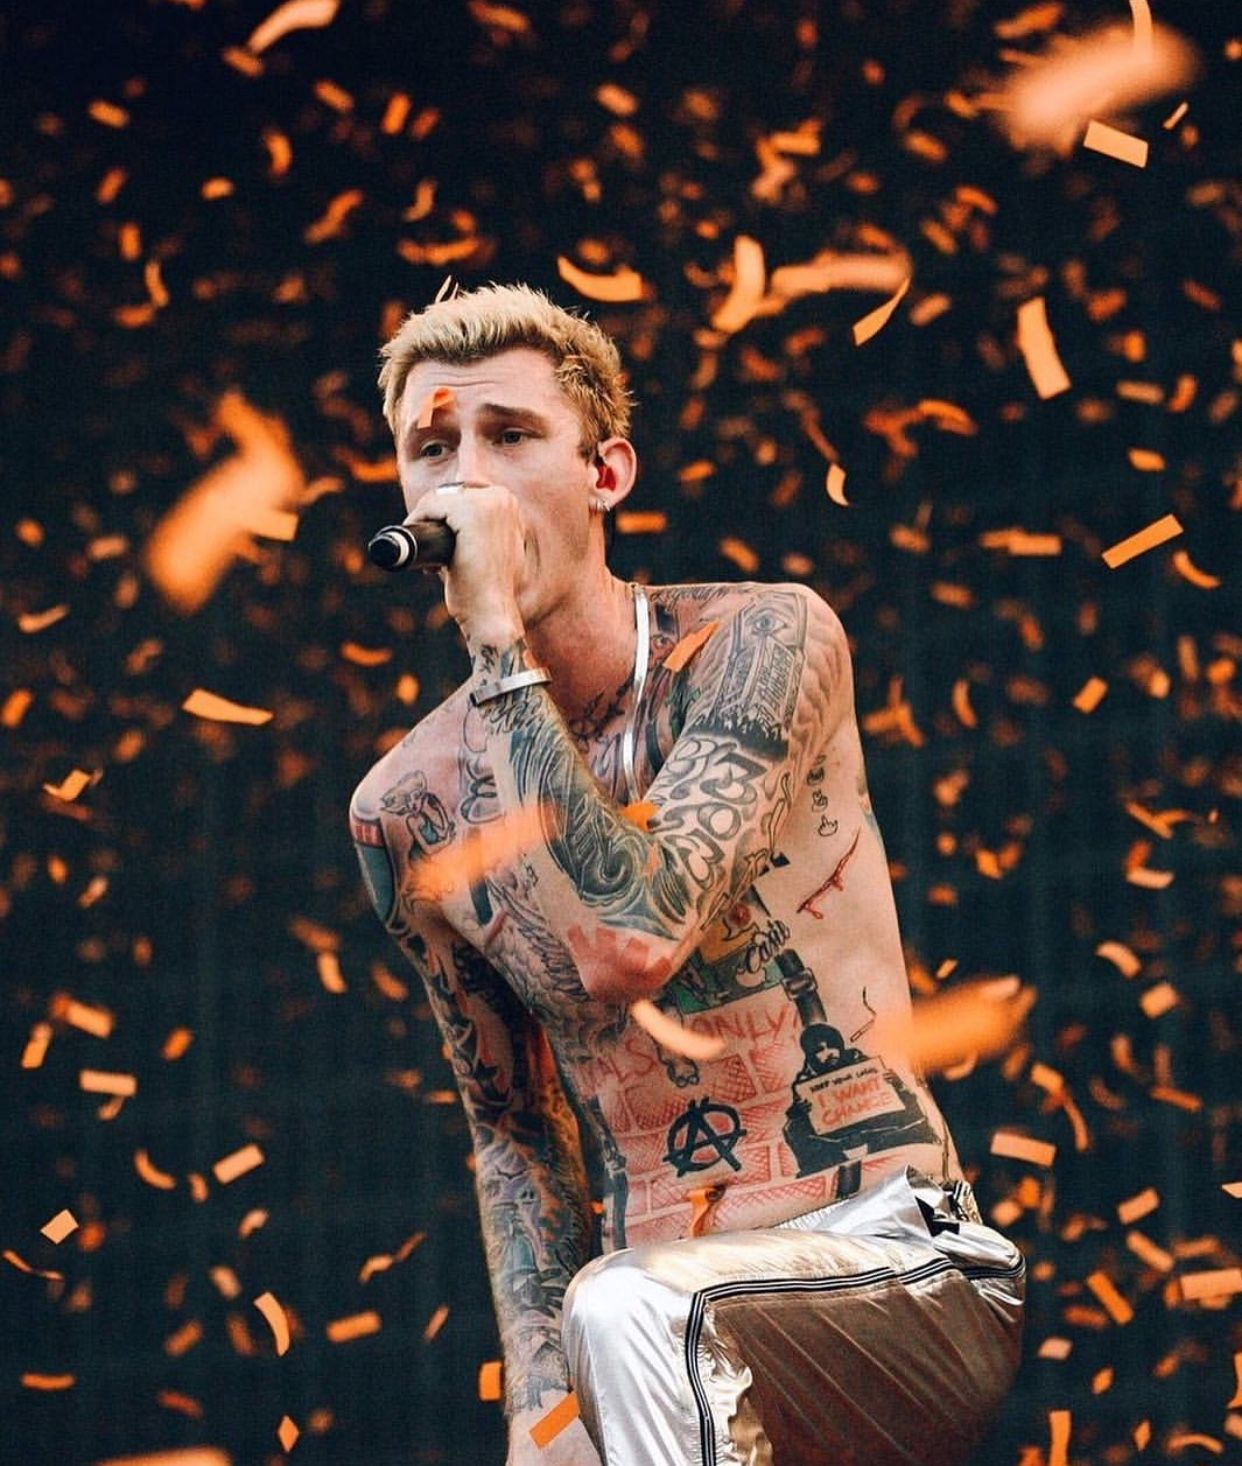 Alone MGK Wallpapers - Top Free Alone MGK Backgrounds